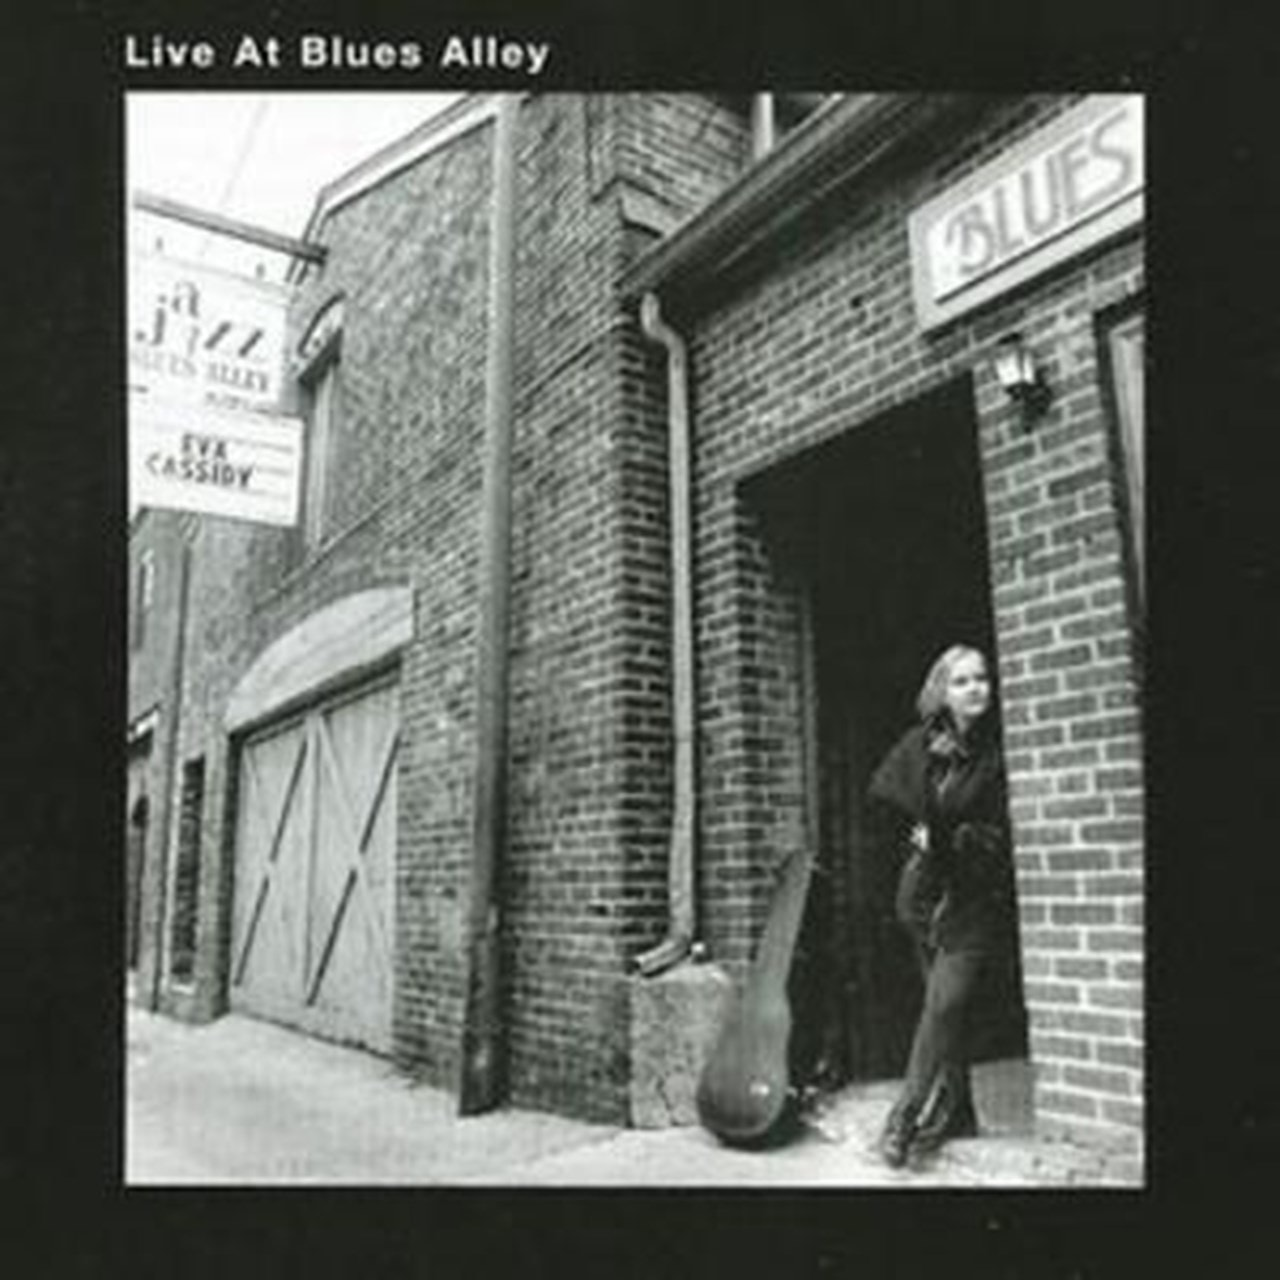 Live at Blues Alley - 1